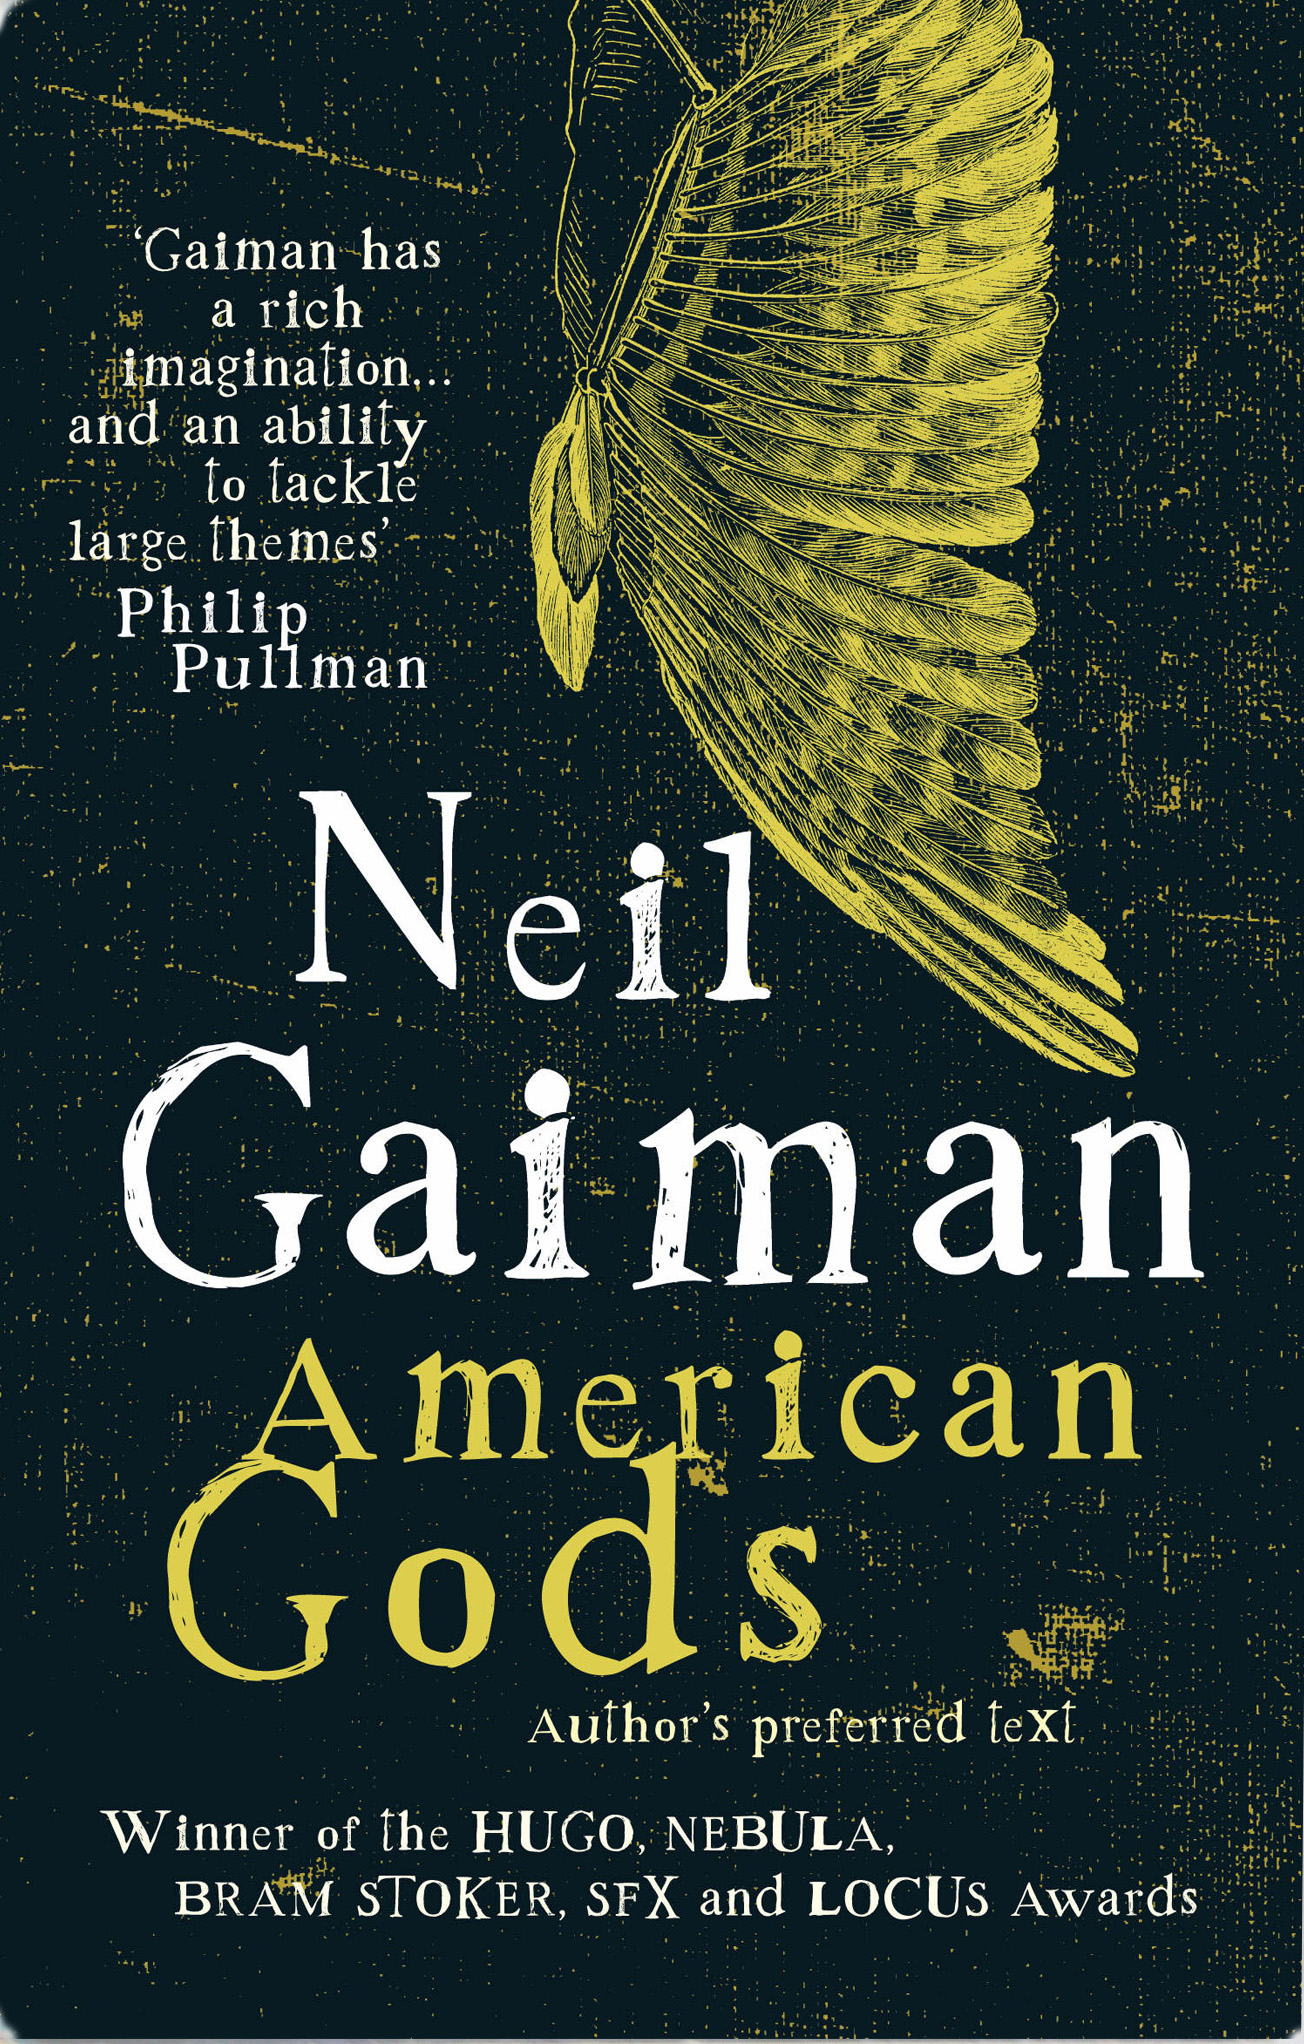 american gods by neil gaiman essay Dreaming american gods: an interview with neil gaiman  i remember reading a wonderful essay by chip delany and i unfortunately forget who he was citing, he was .